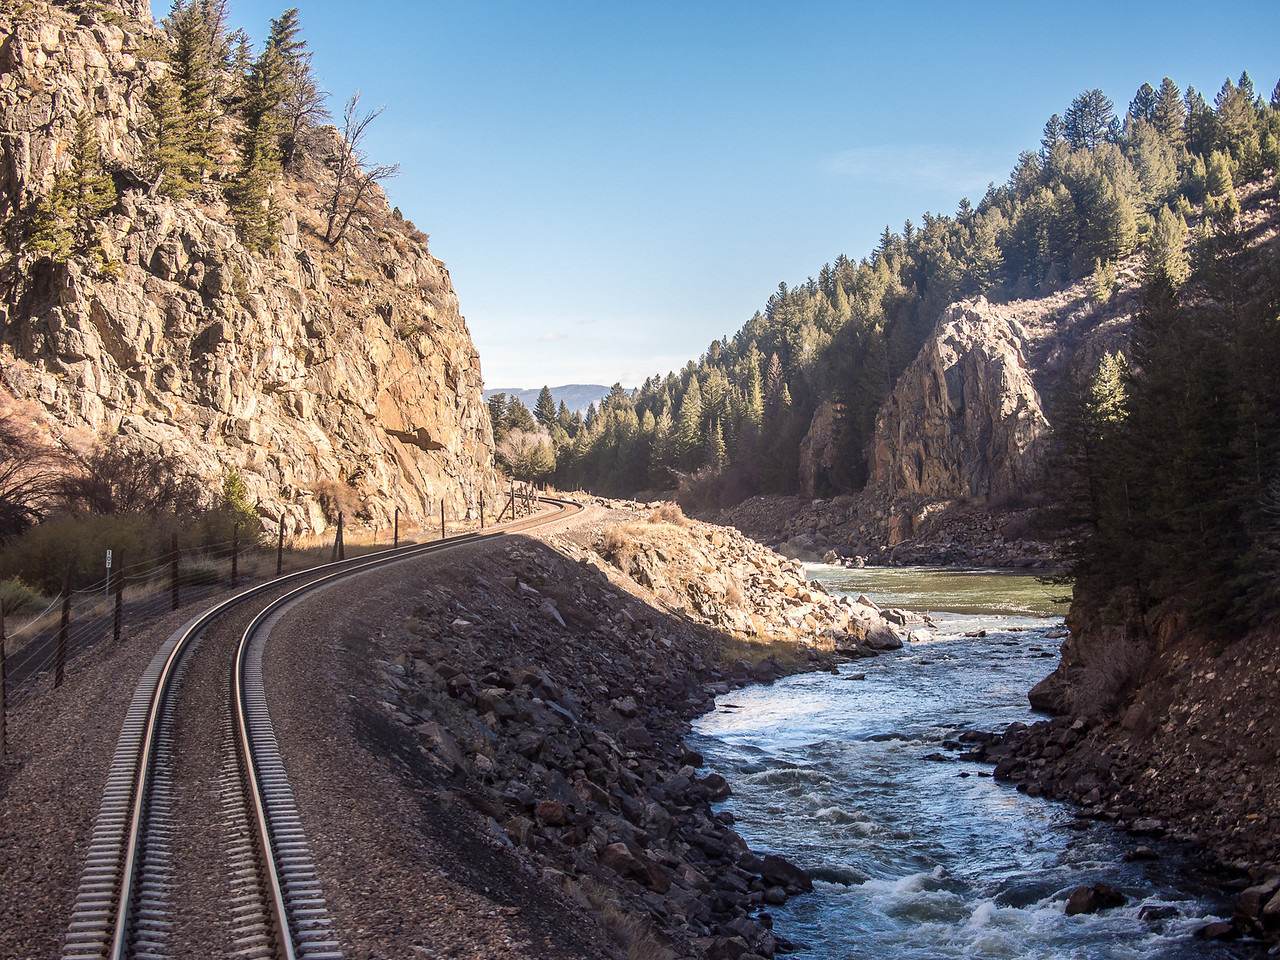 Looking out The Back of the California Zephyr as it Parallels the Colorado River in Northern Colorado.